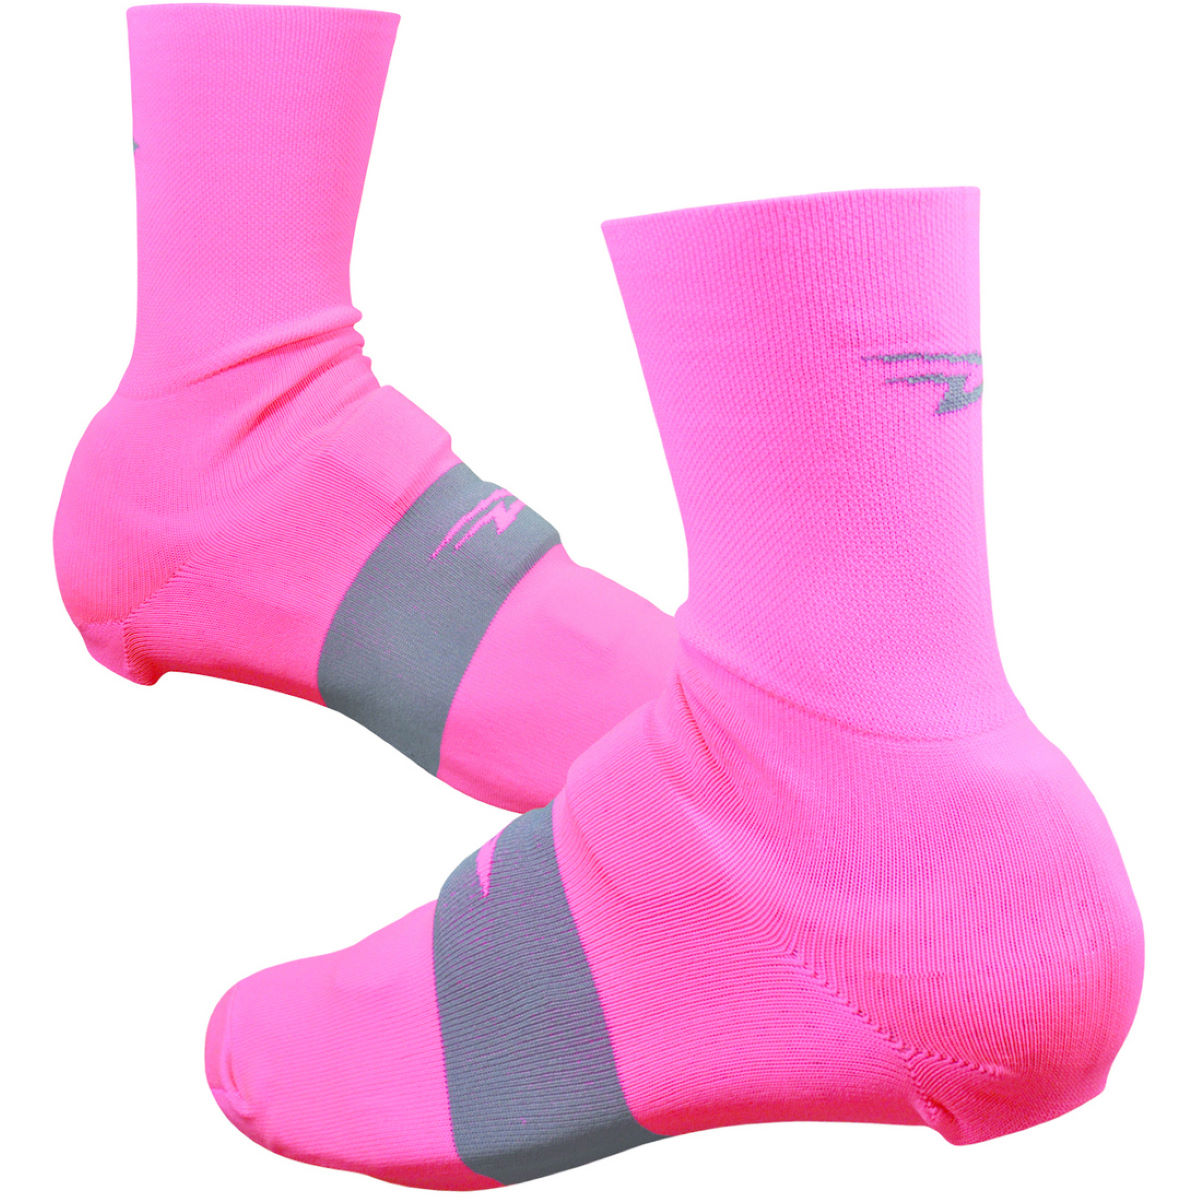 Couvre-chaussures DeFeet Slipstream (fluos) - L/XL Flamingo Pink